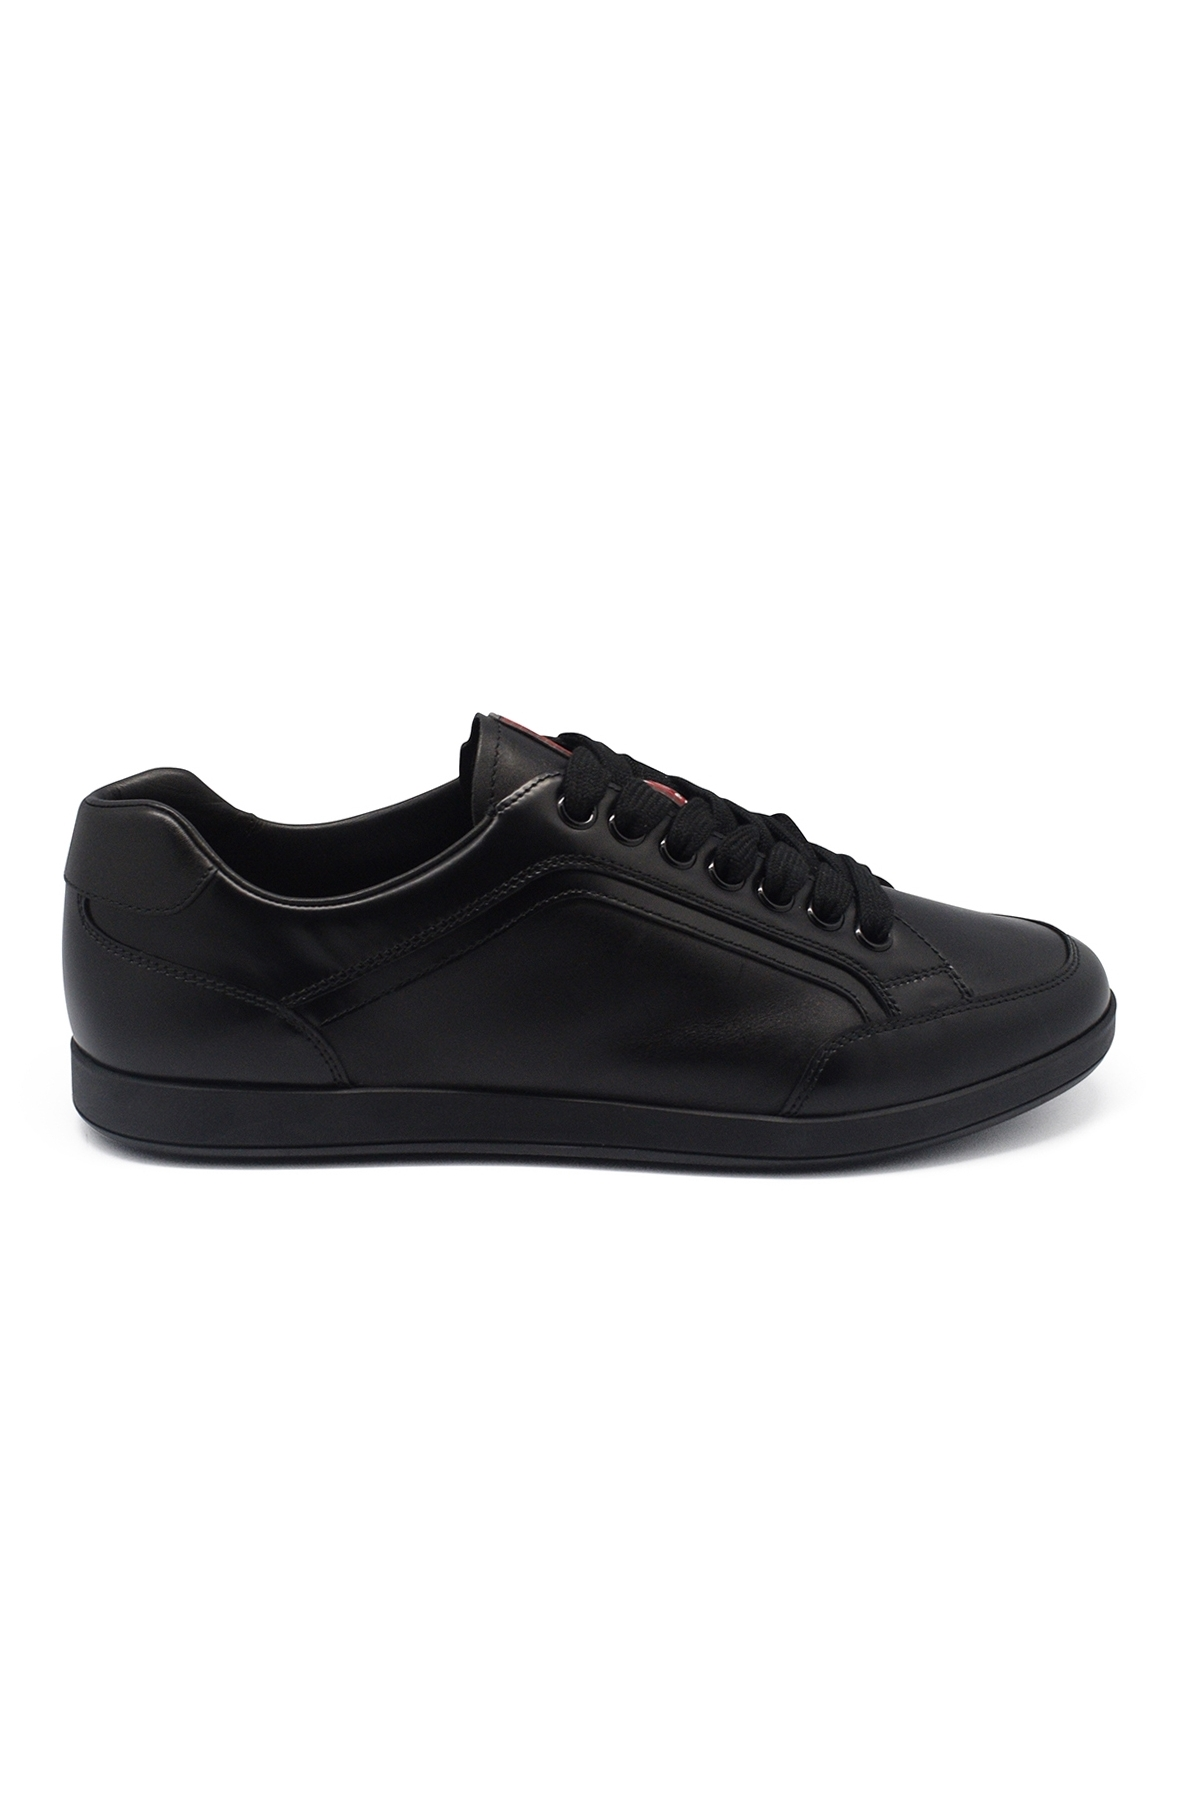 Prada black lace-up sneakers in leather with white and red Prada logo on the tongue